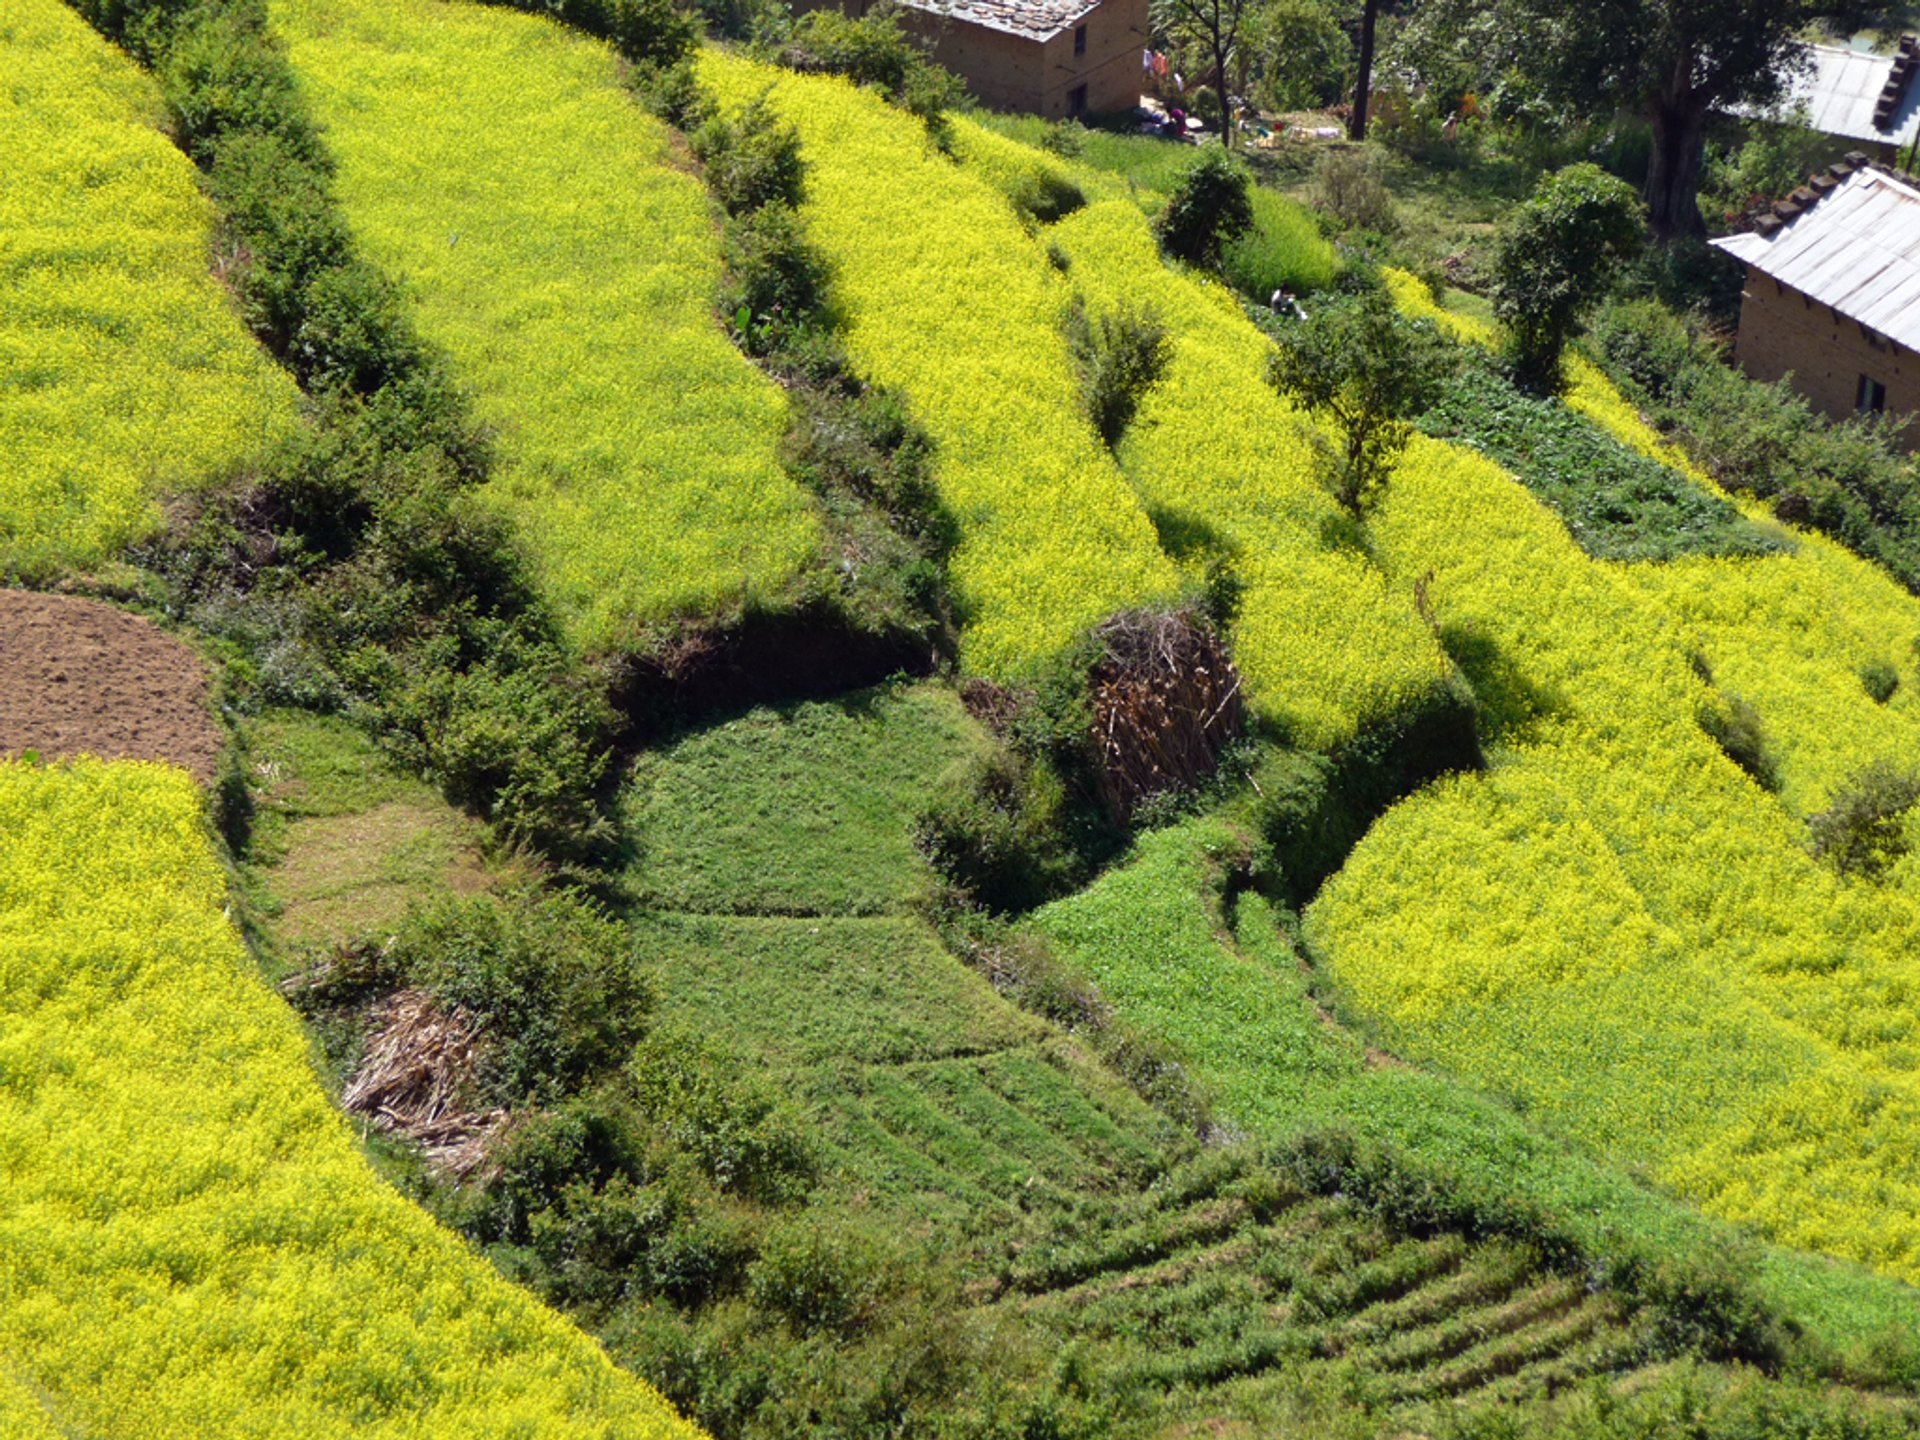 Mustard Fields in Bloom in Nepal - Best Season 2020